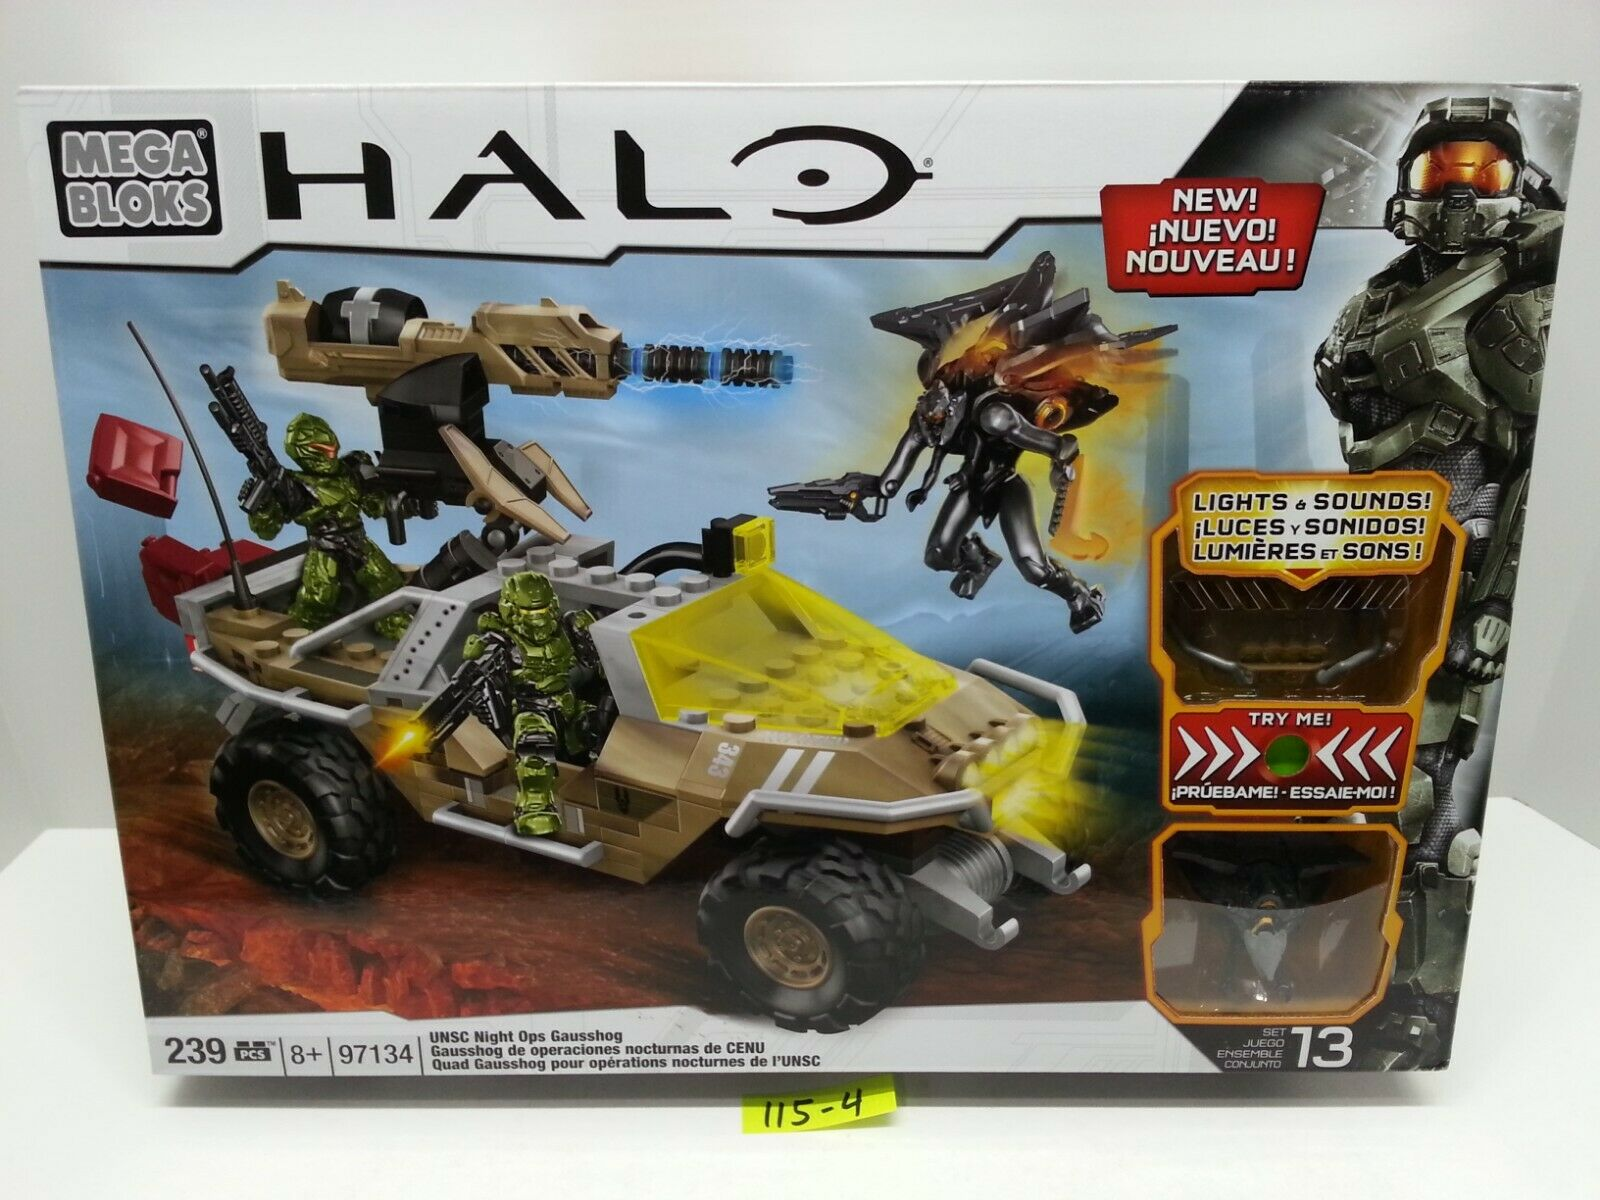 HALO Mega Bloks - UNSC NIGHT OPS GAUSSHOG PIECES - BRAND NEW SEALED